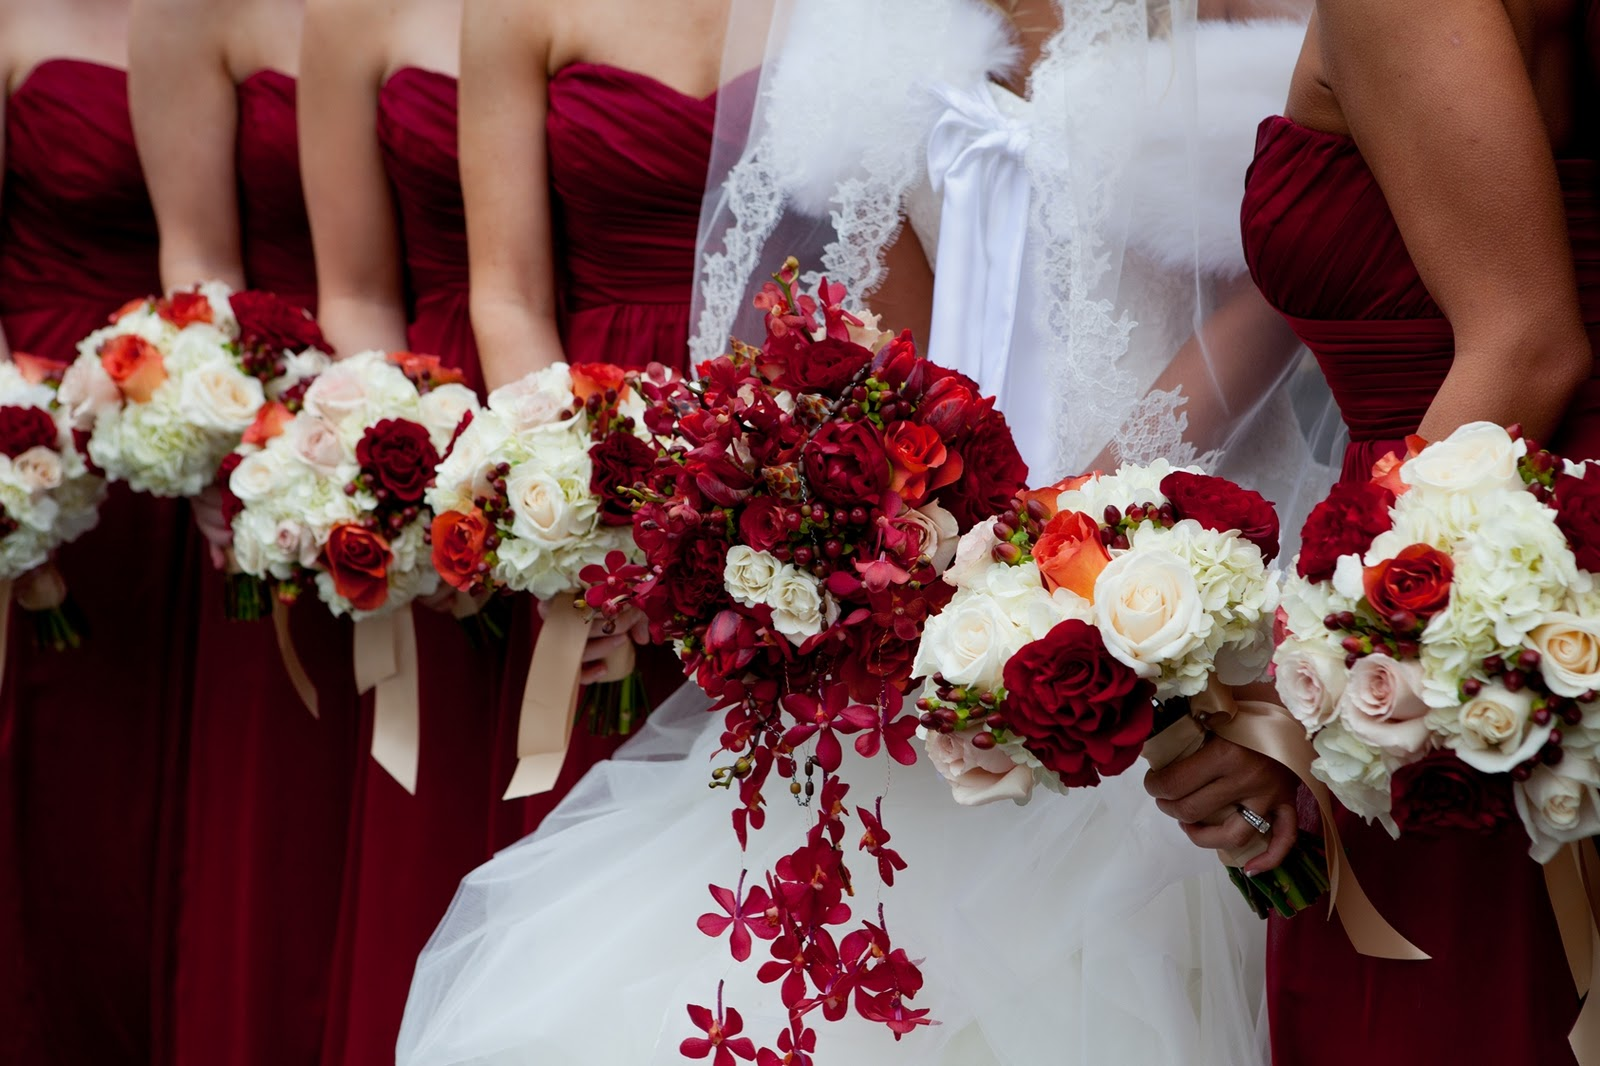 Cranberry champagne wedding - Cranberry And White Wedding Eventdazzle